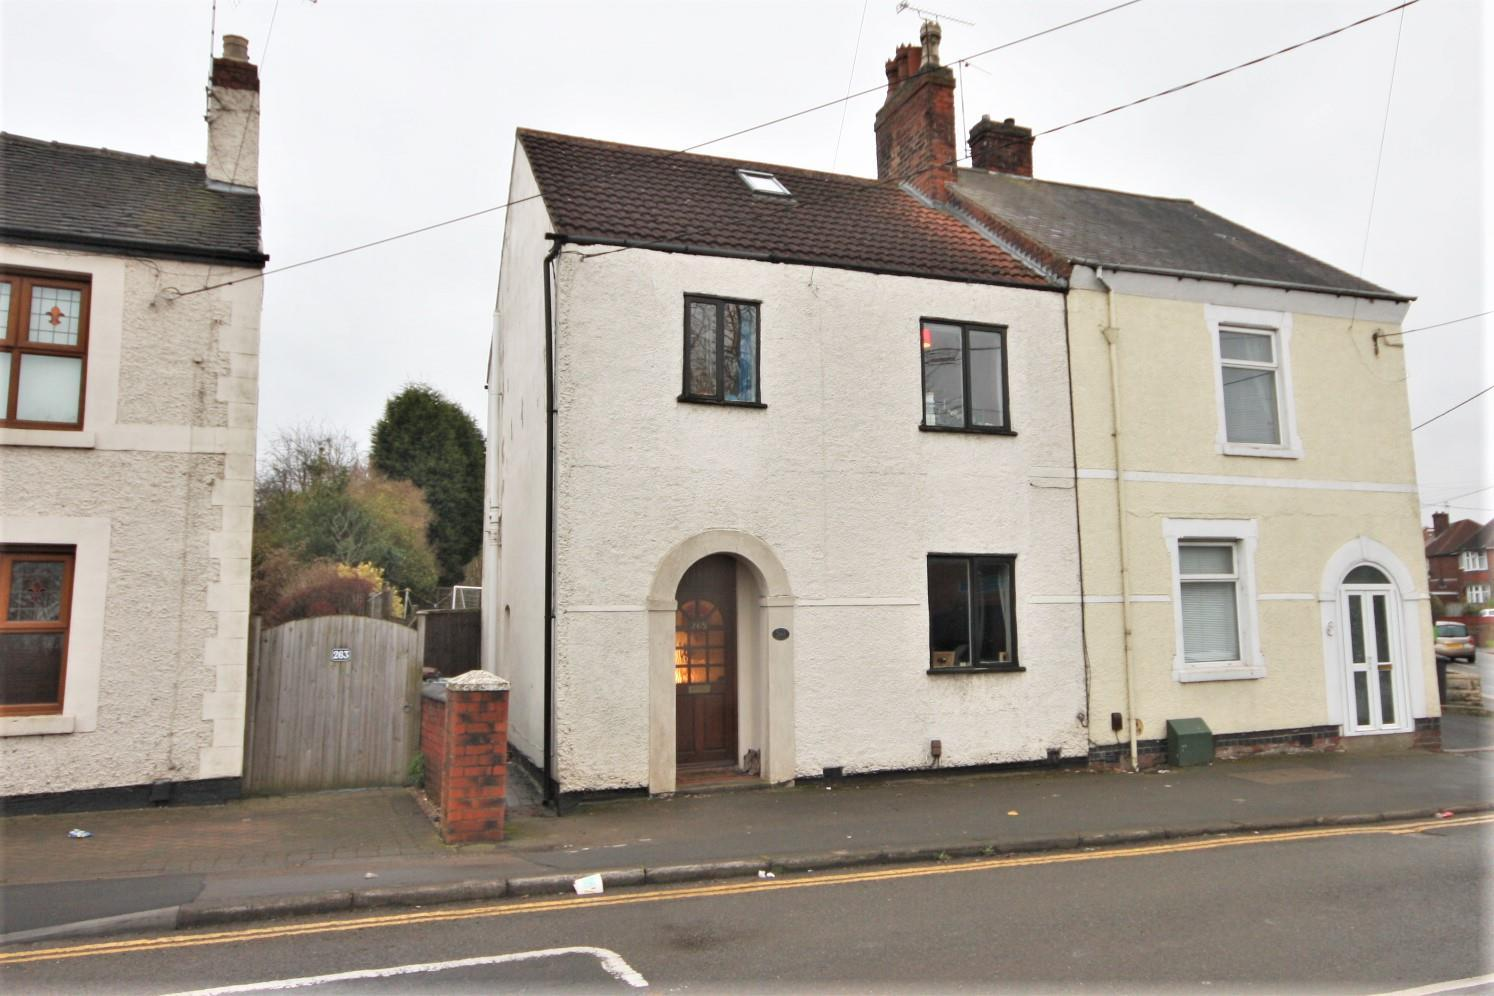 3 Bedrooms Detached House for sale in Church Lane, Whitwick, Coalville